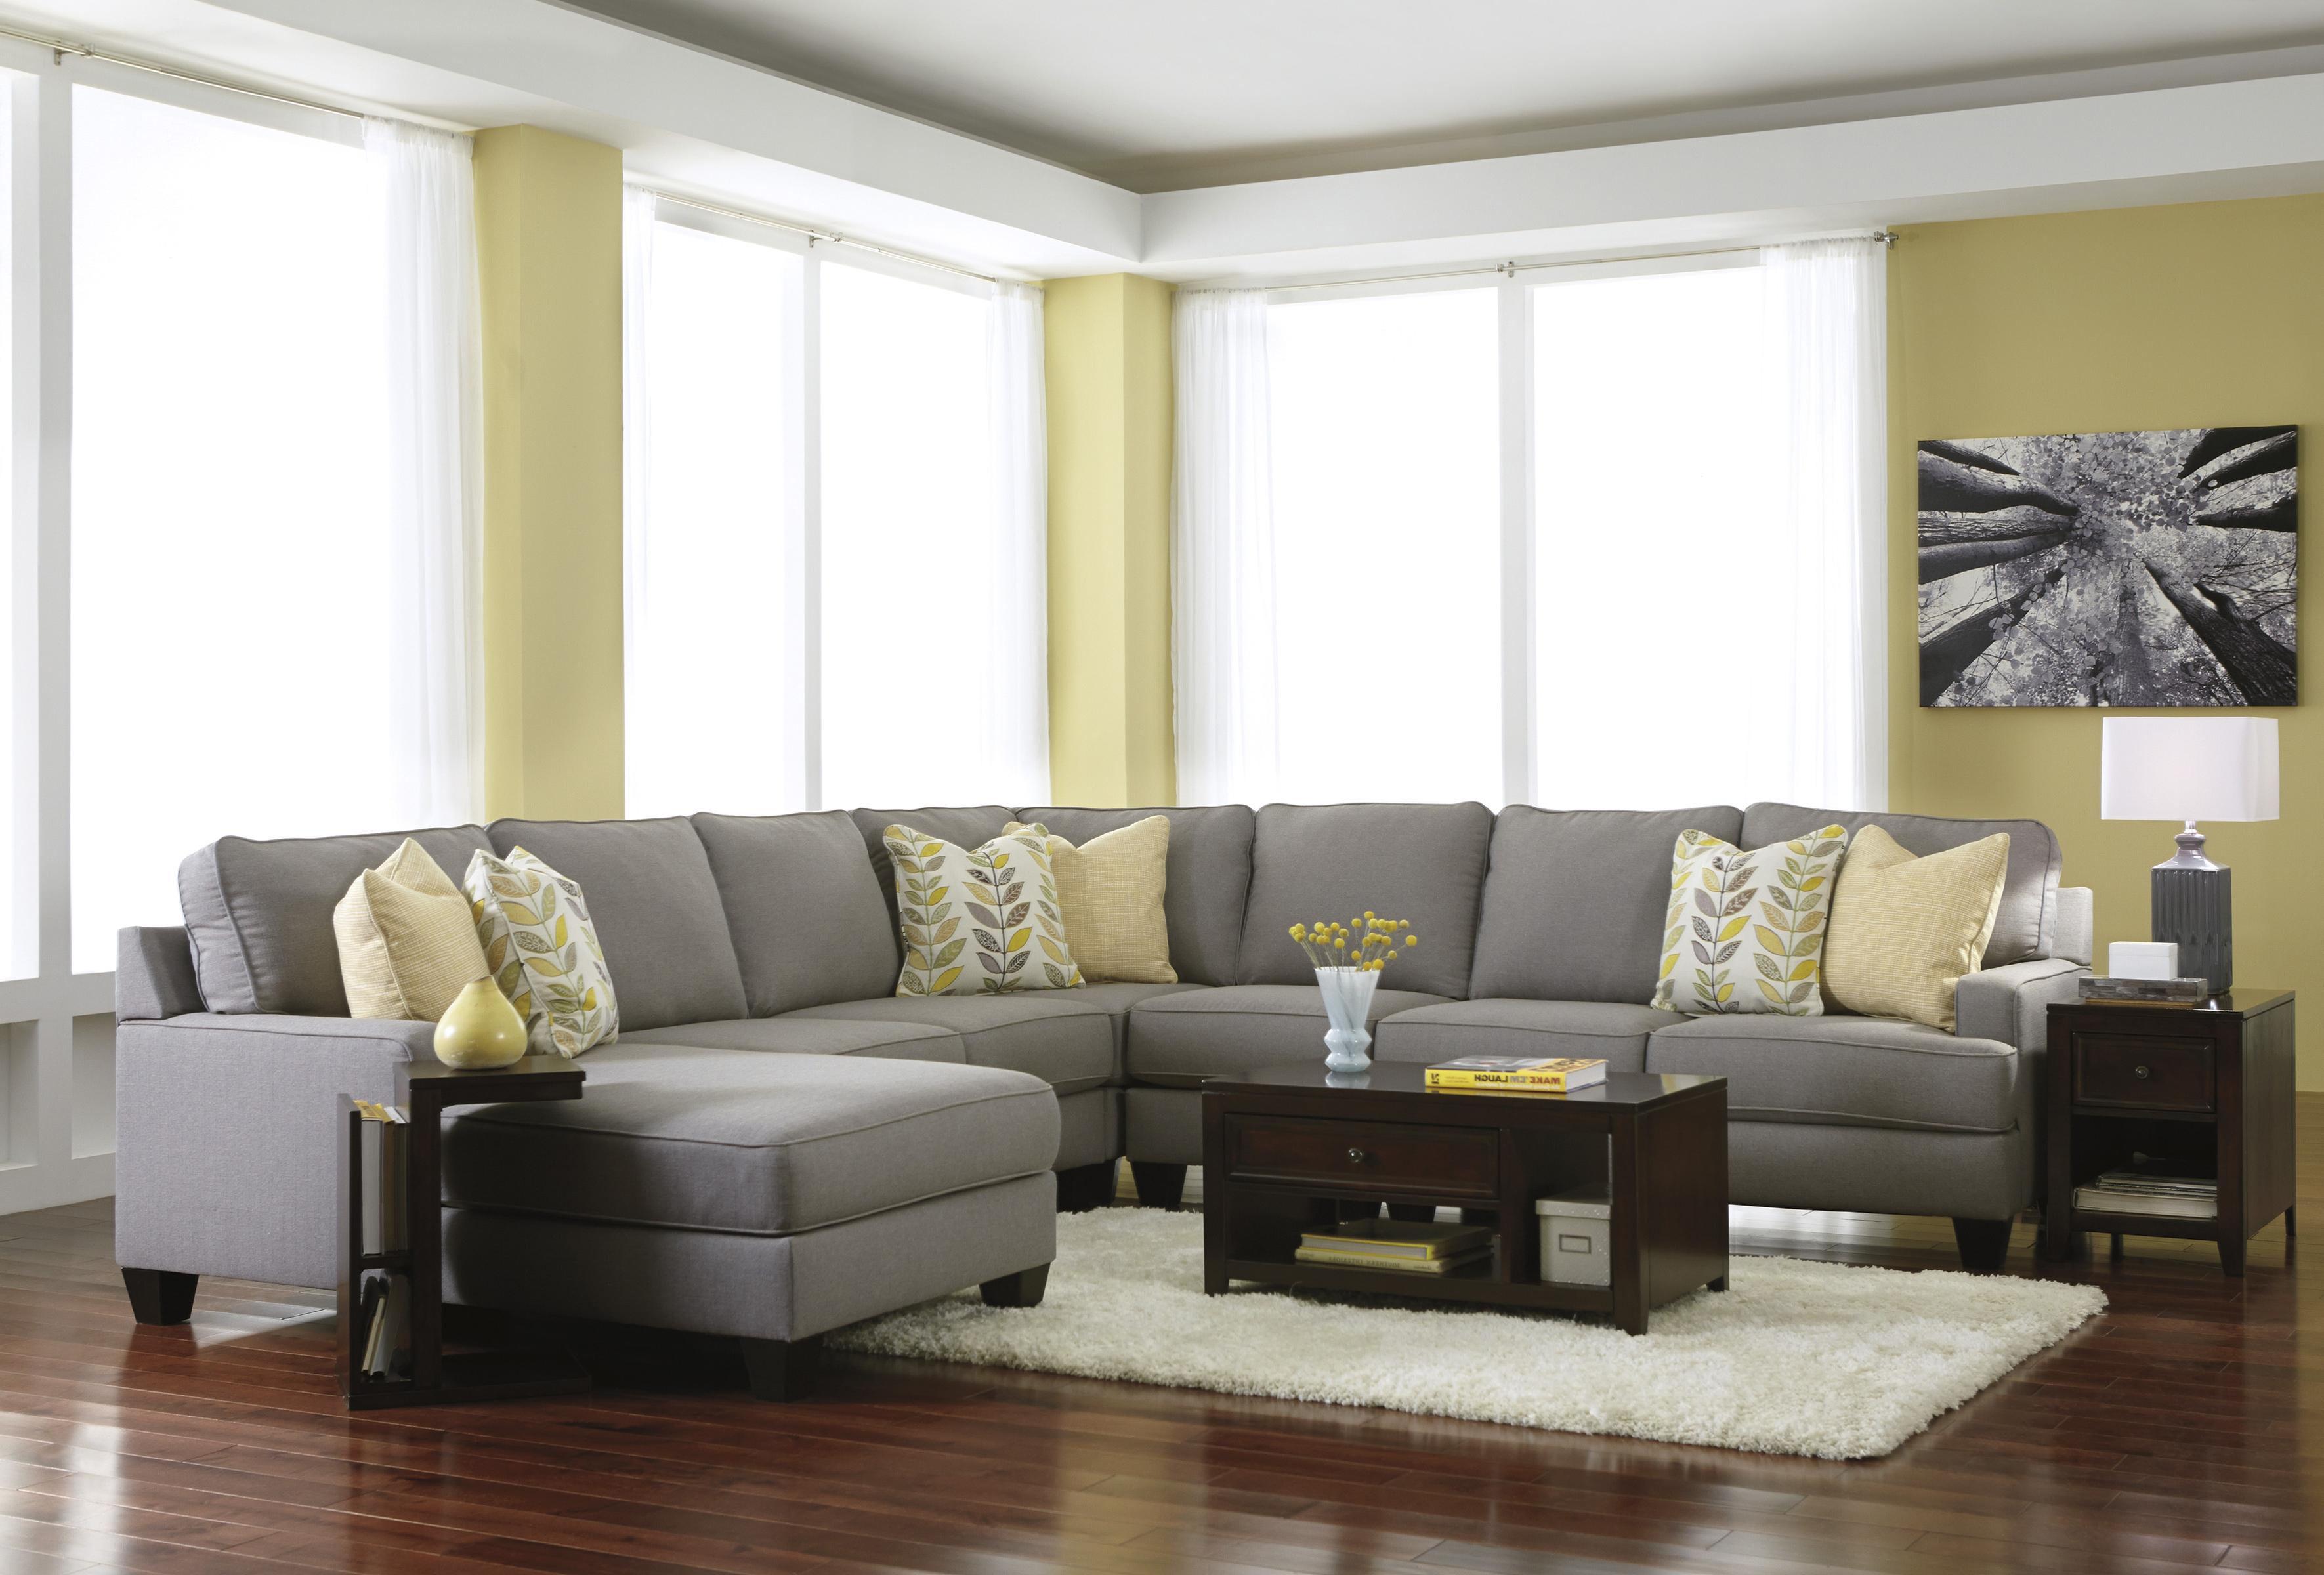 Signature design by ashley chamberly alloy modern 5 for 5 piece living room furniture